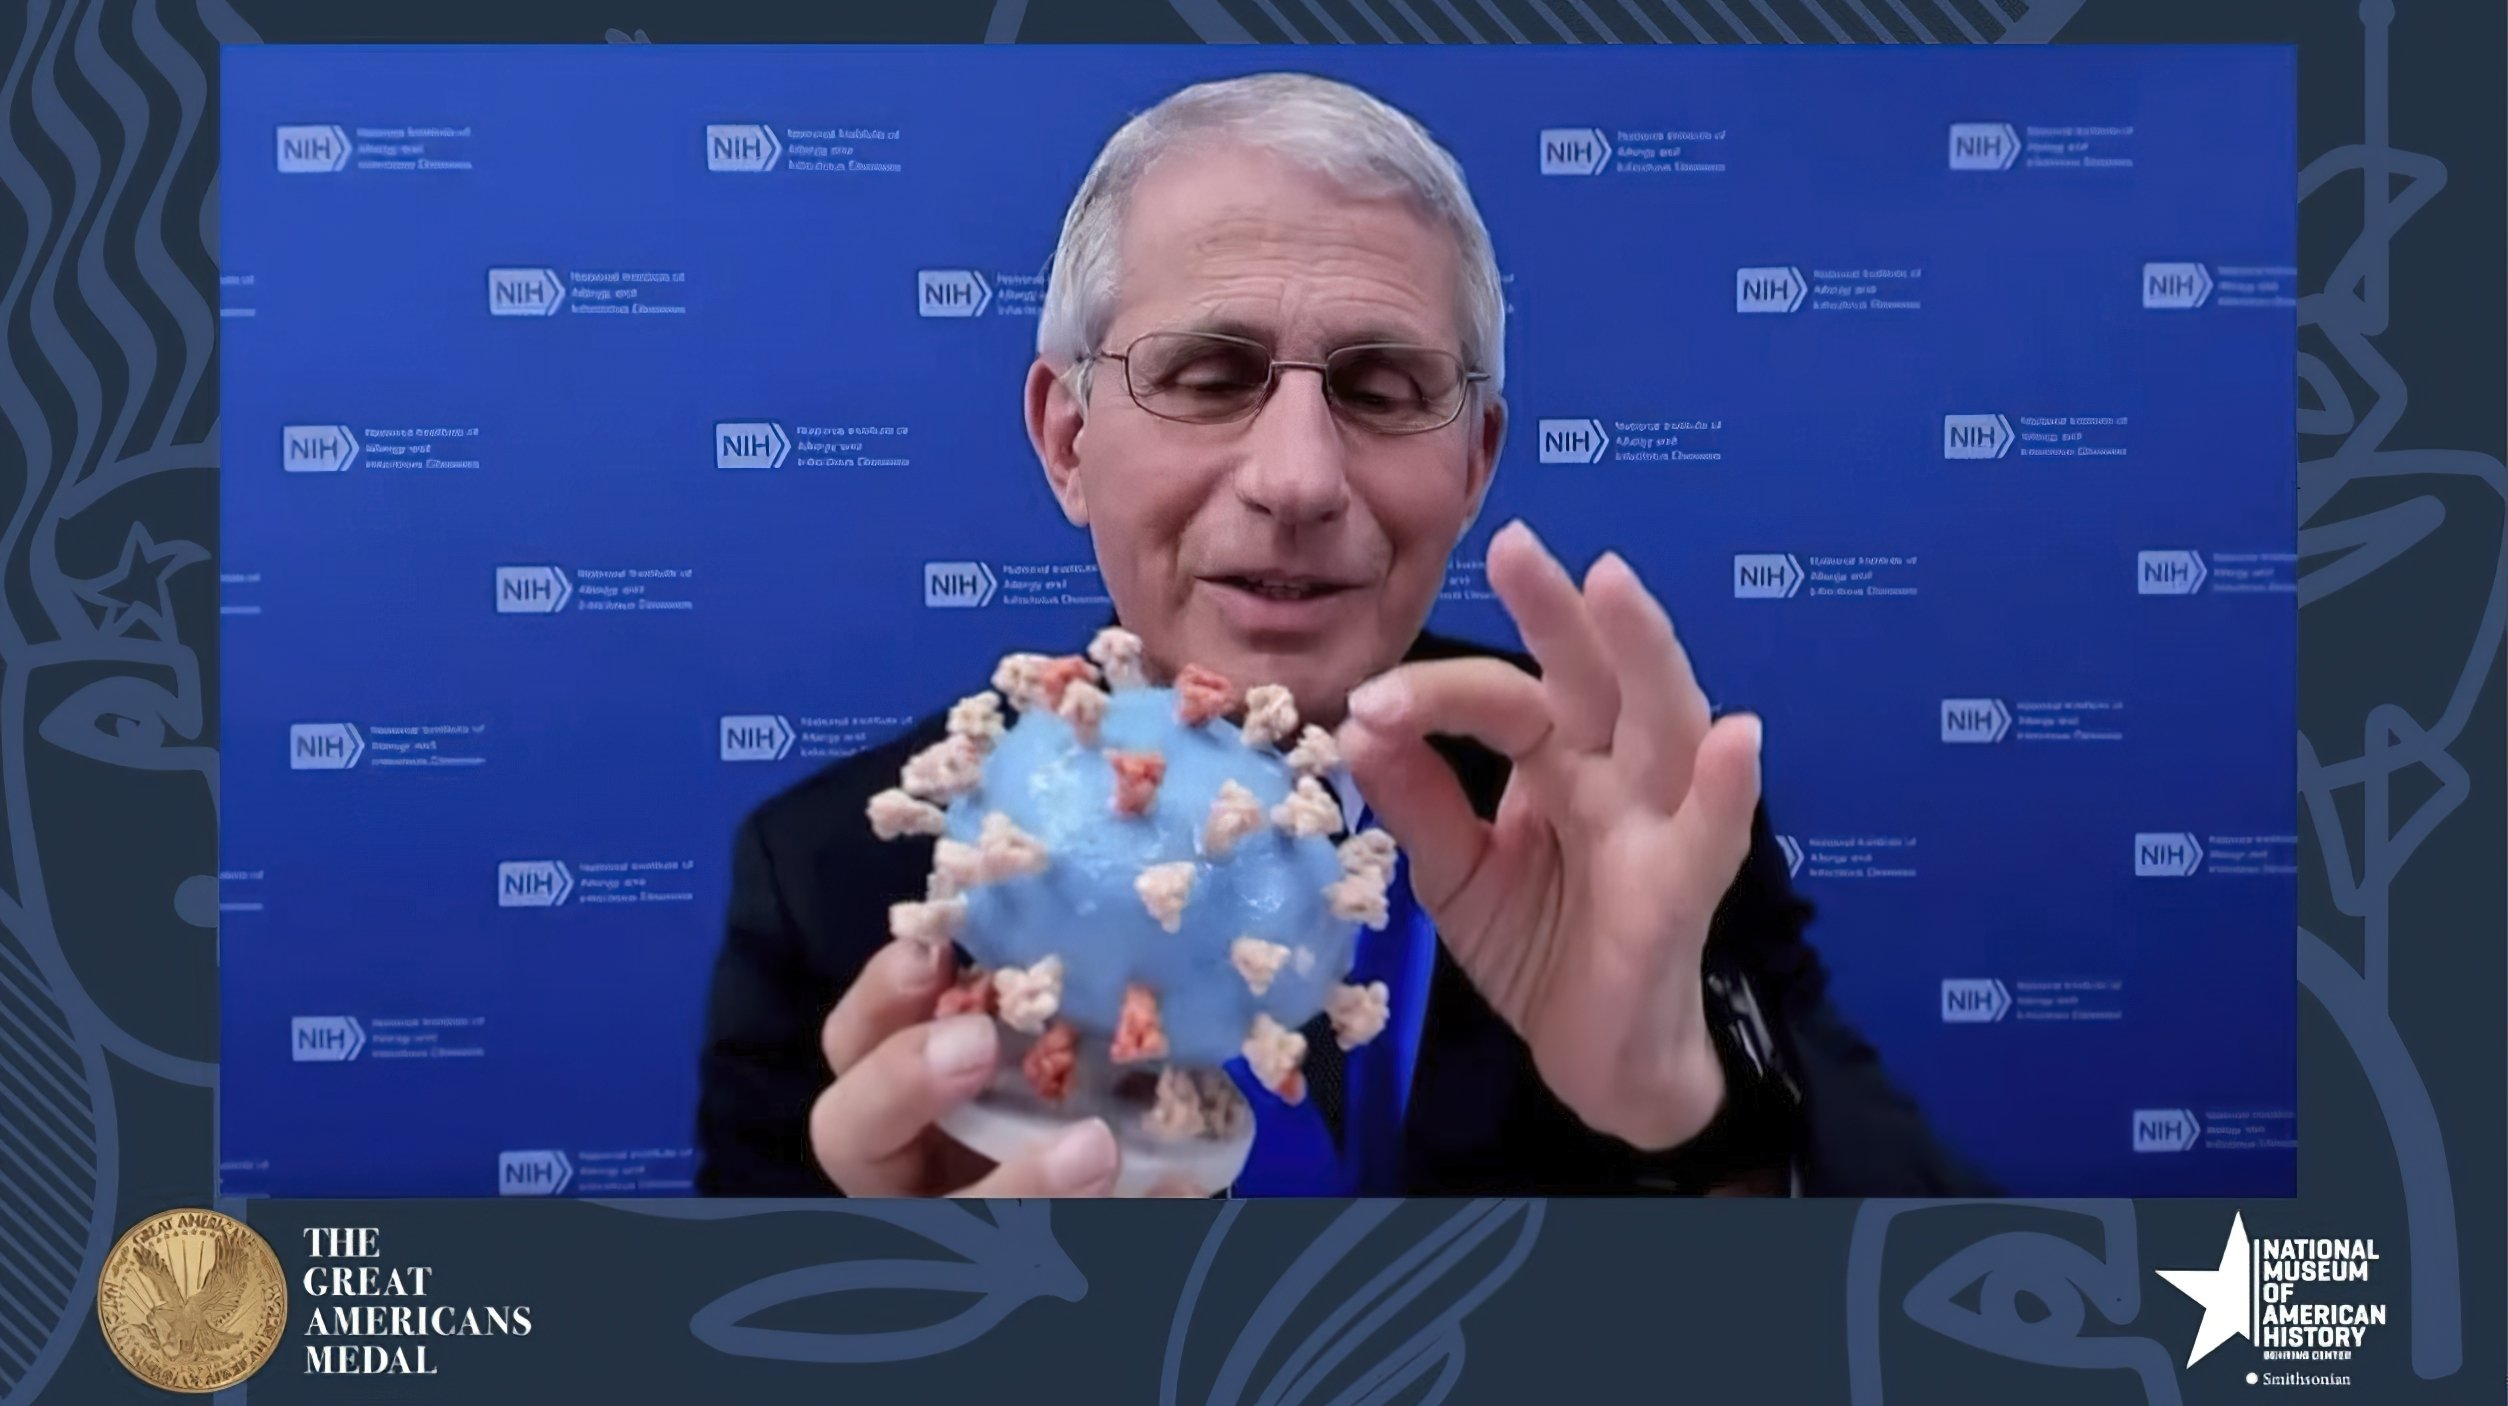 Fauci presents his personal virus model to Smithsonian - Associated Press